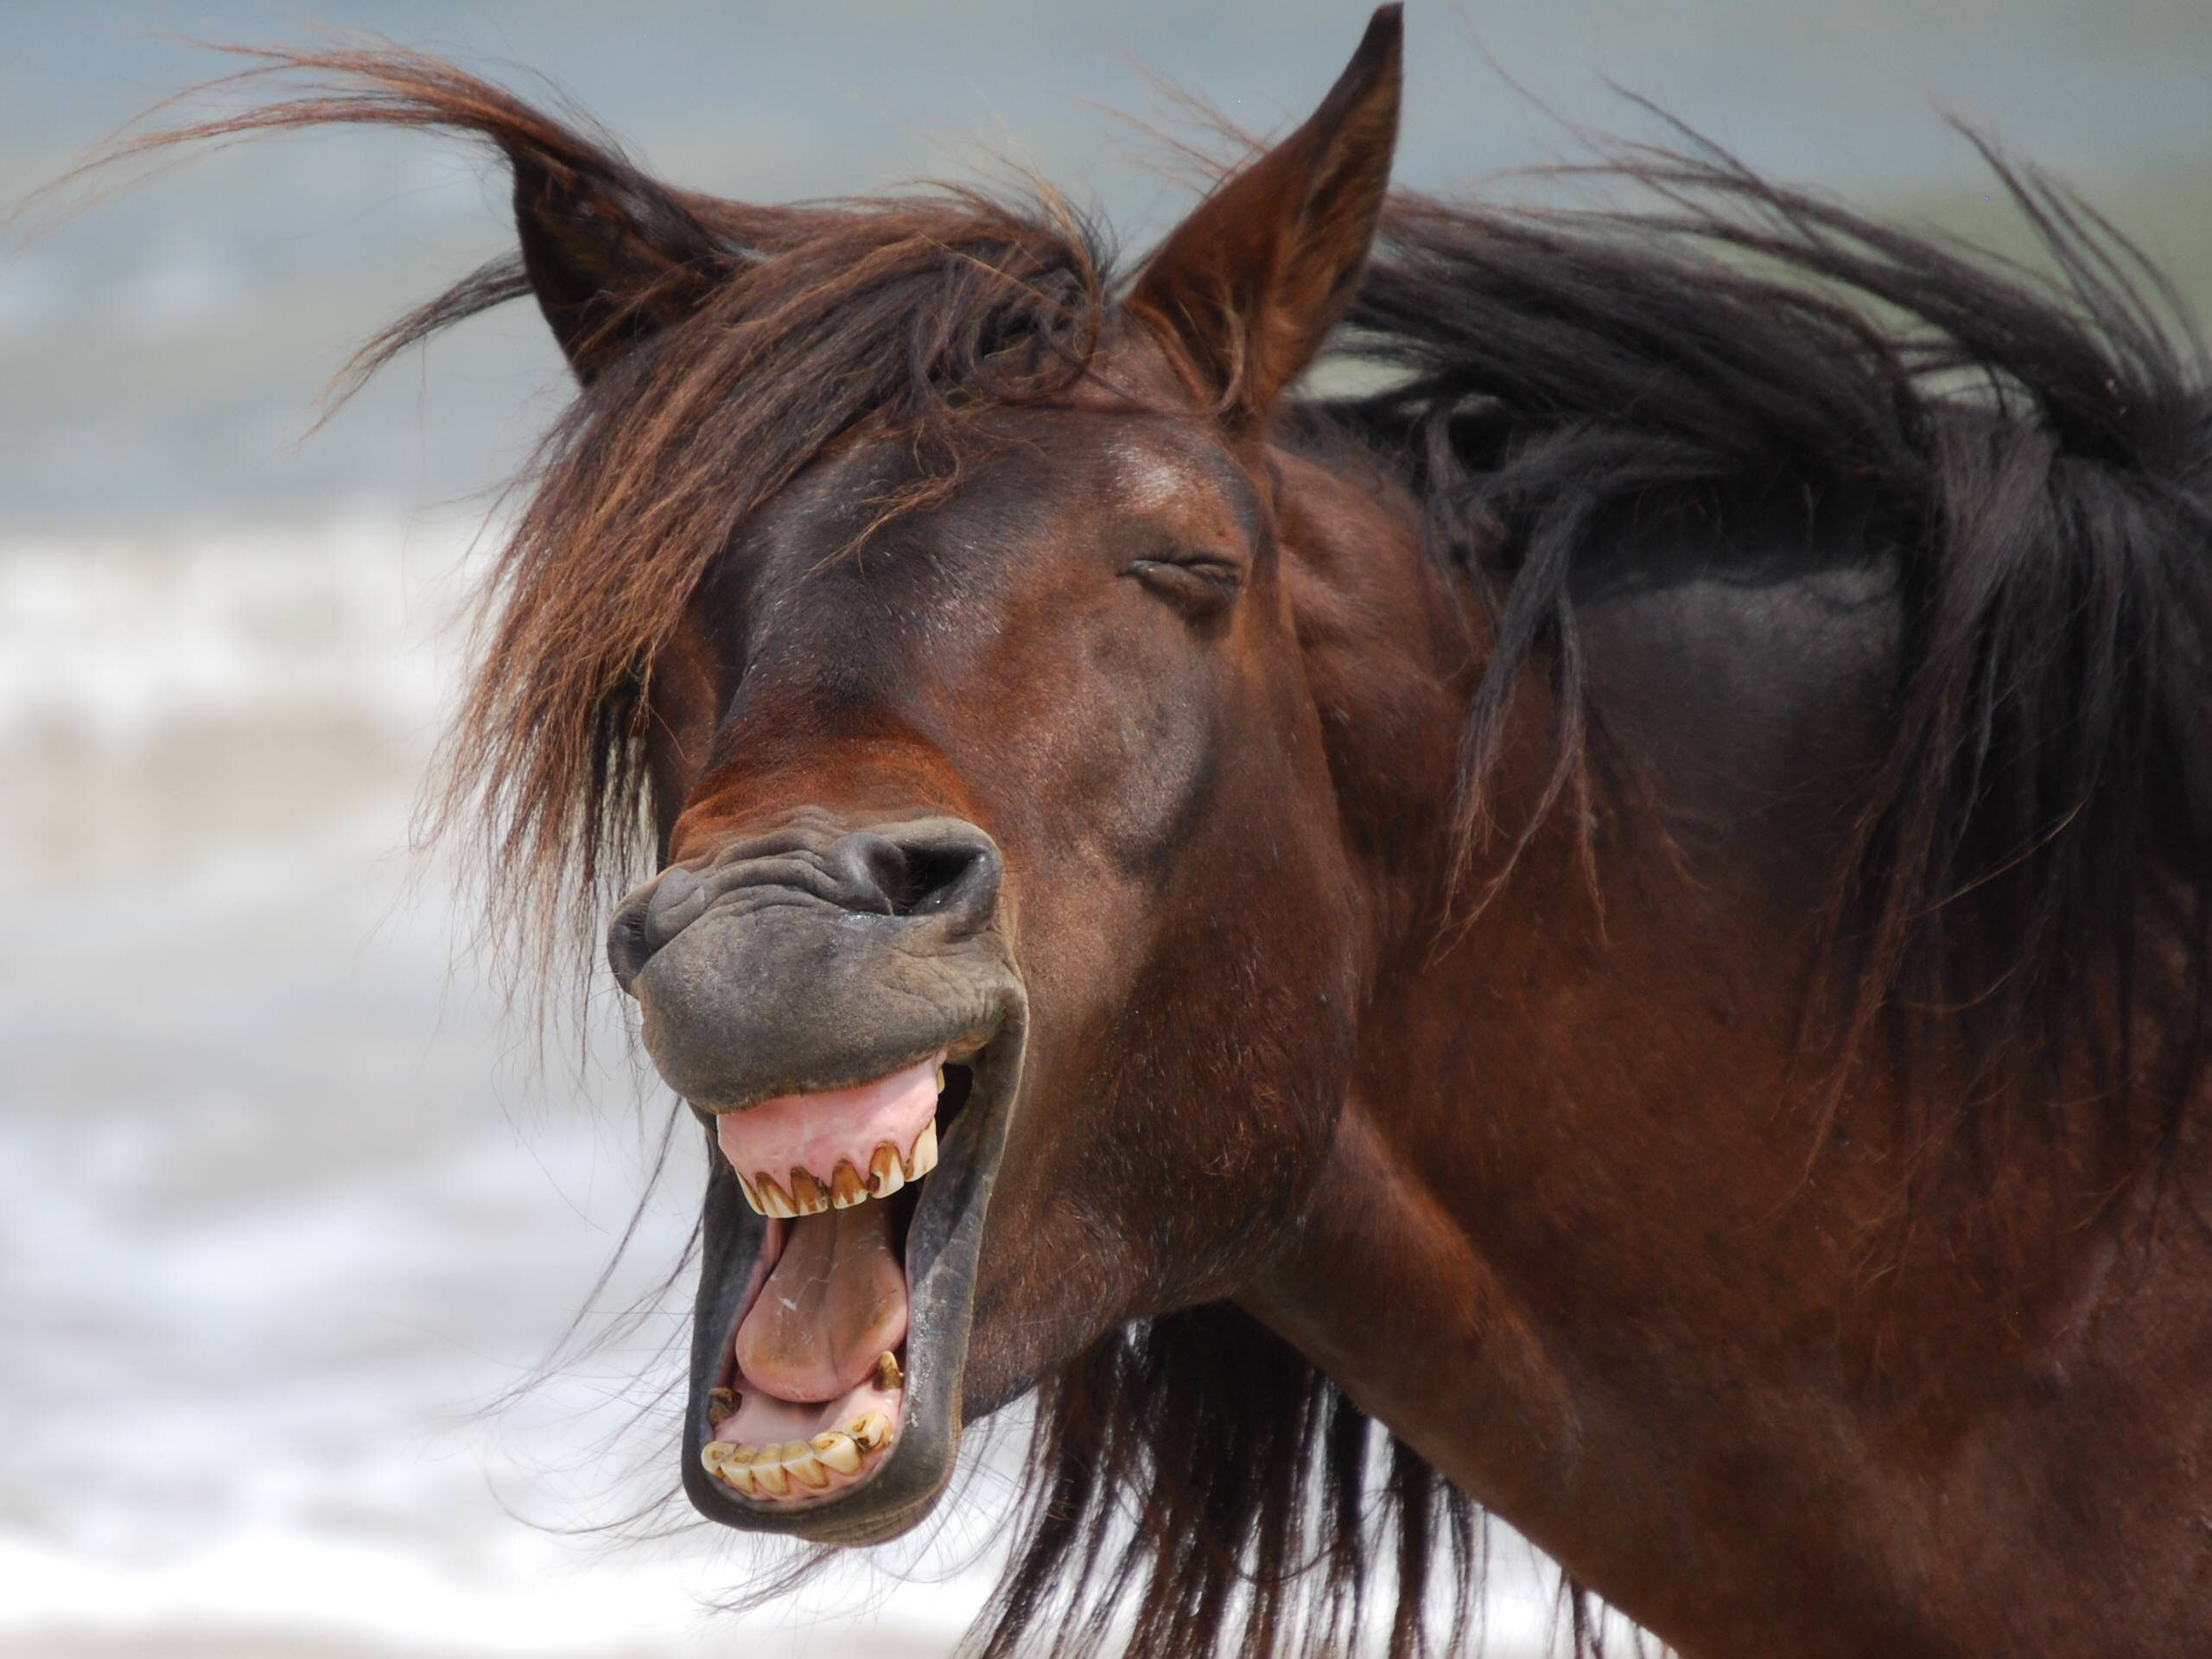 Top 10 Images of Laughing Horses - photo#43